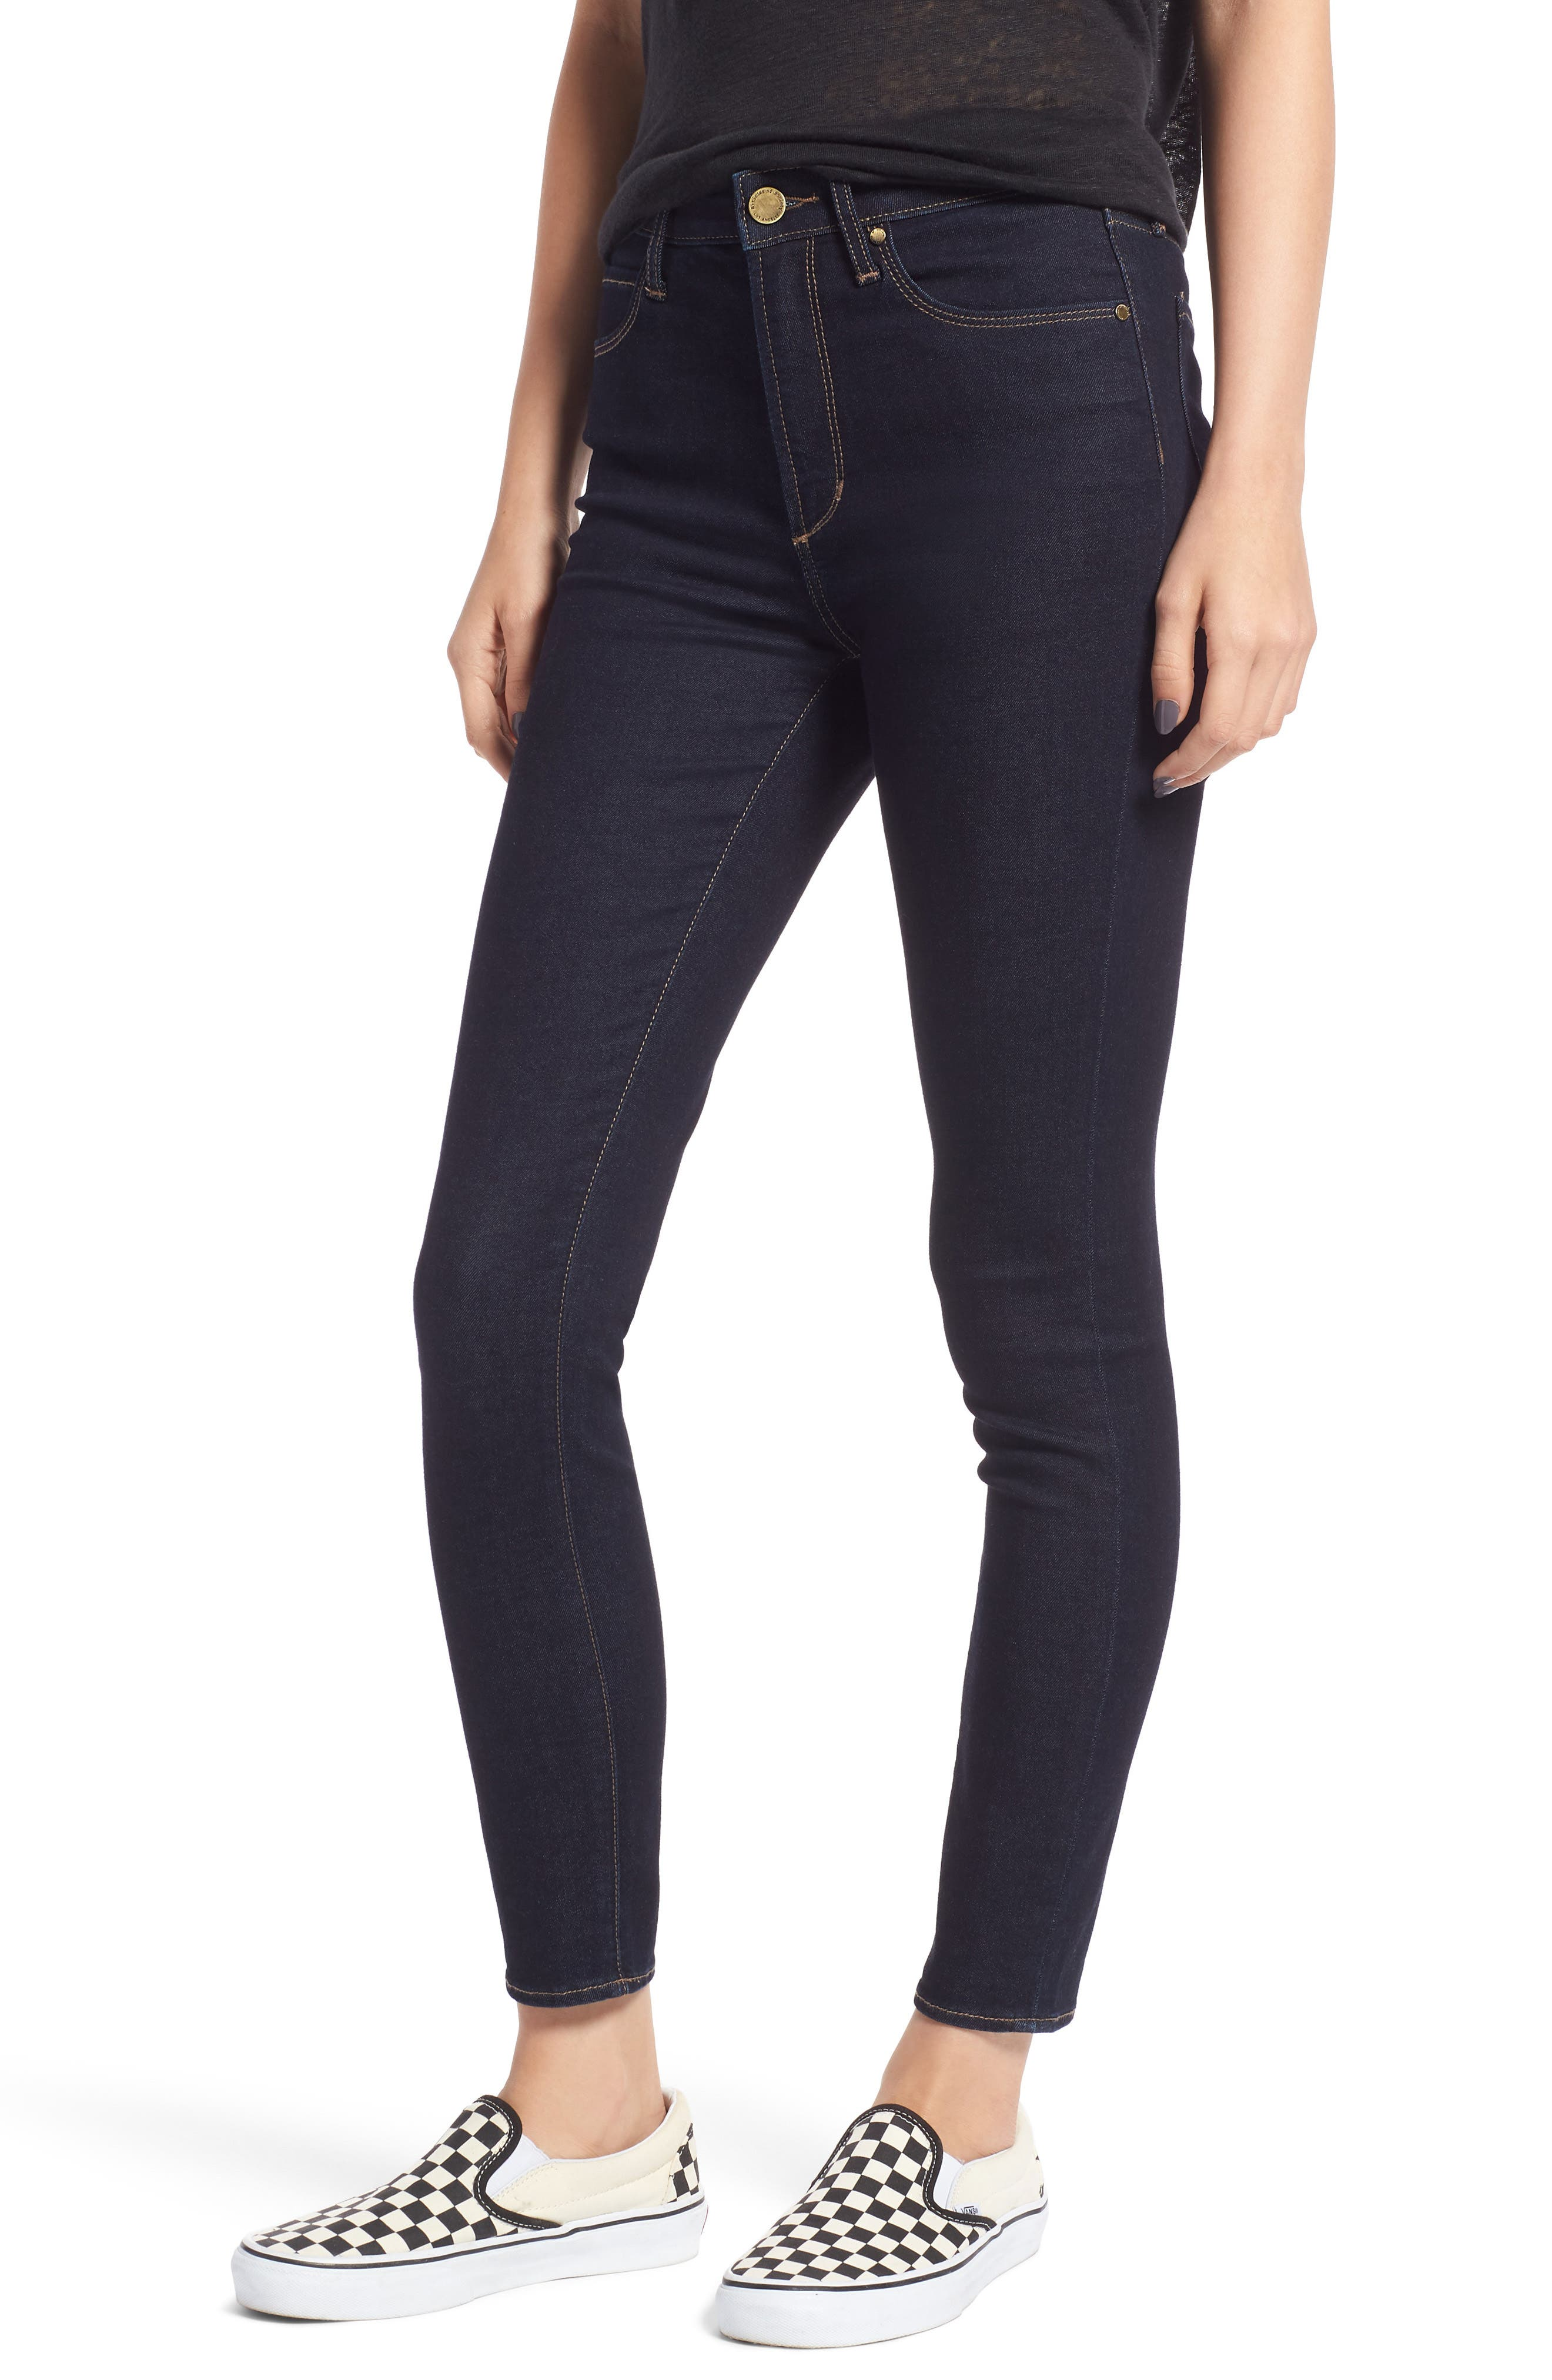 Women's Articles Of Society Heather High Waist Skinny Jeans